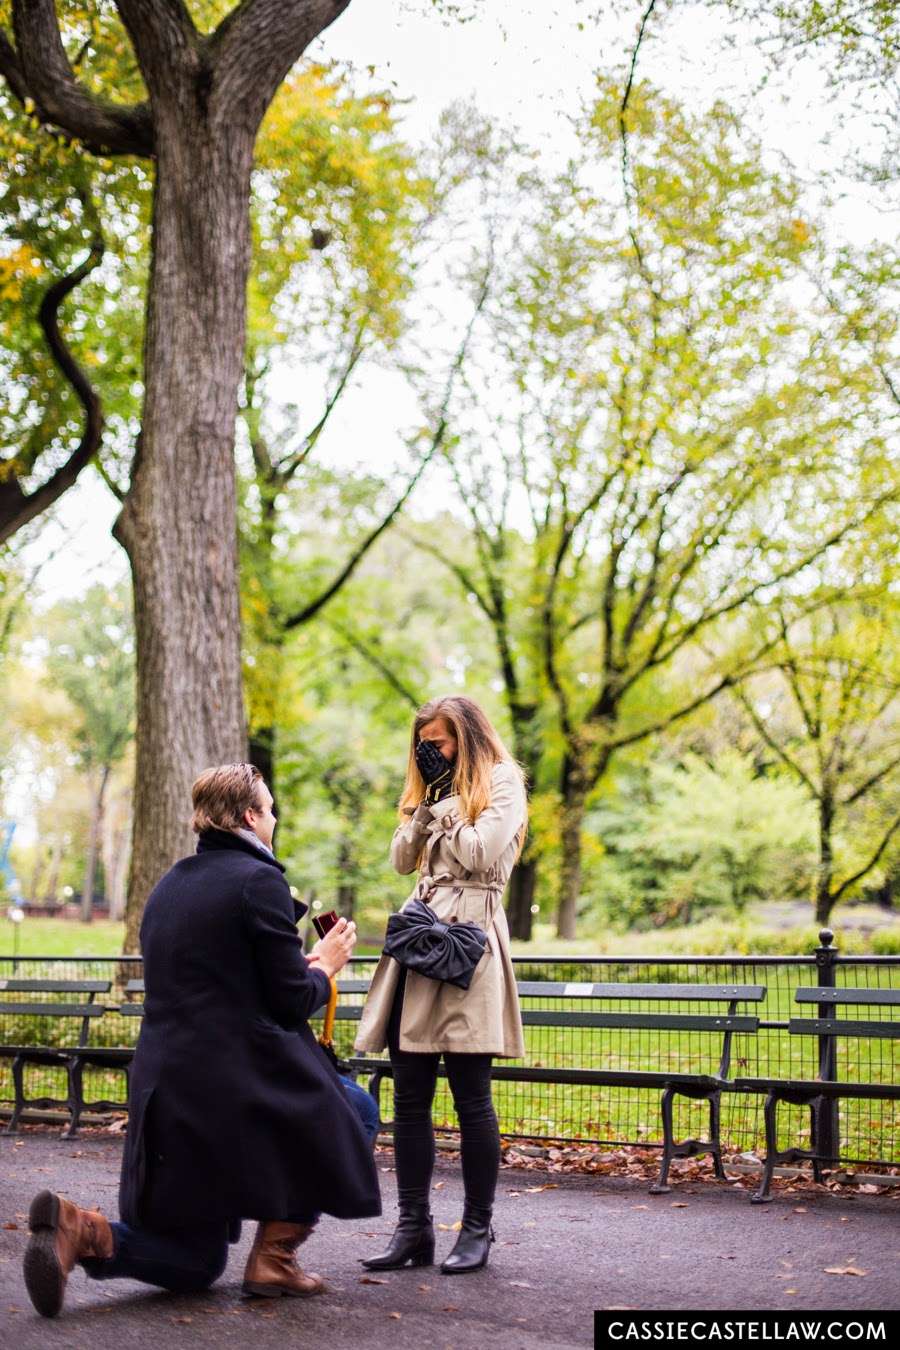 Romantic proposal in The Mall under American Elm trees in Fall, Central Park Lifestyle Engagement Portraits NYC - www.cassiecastellaw.com